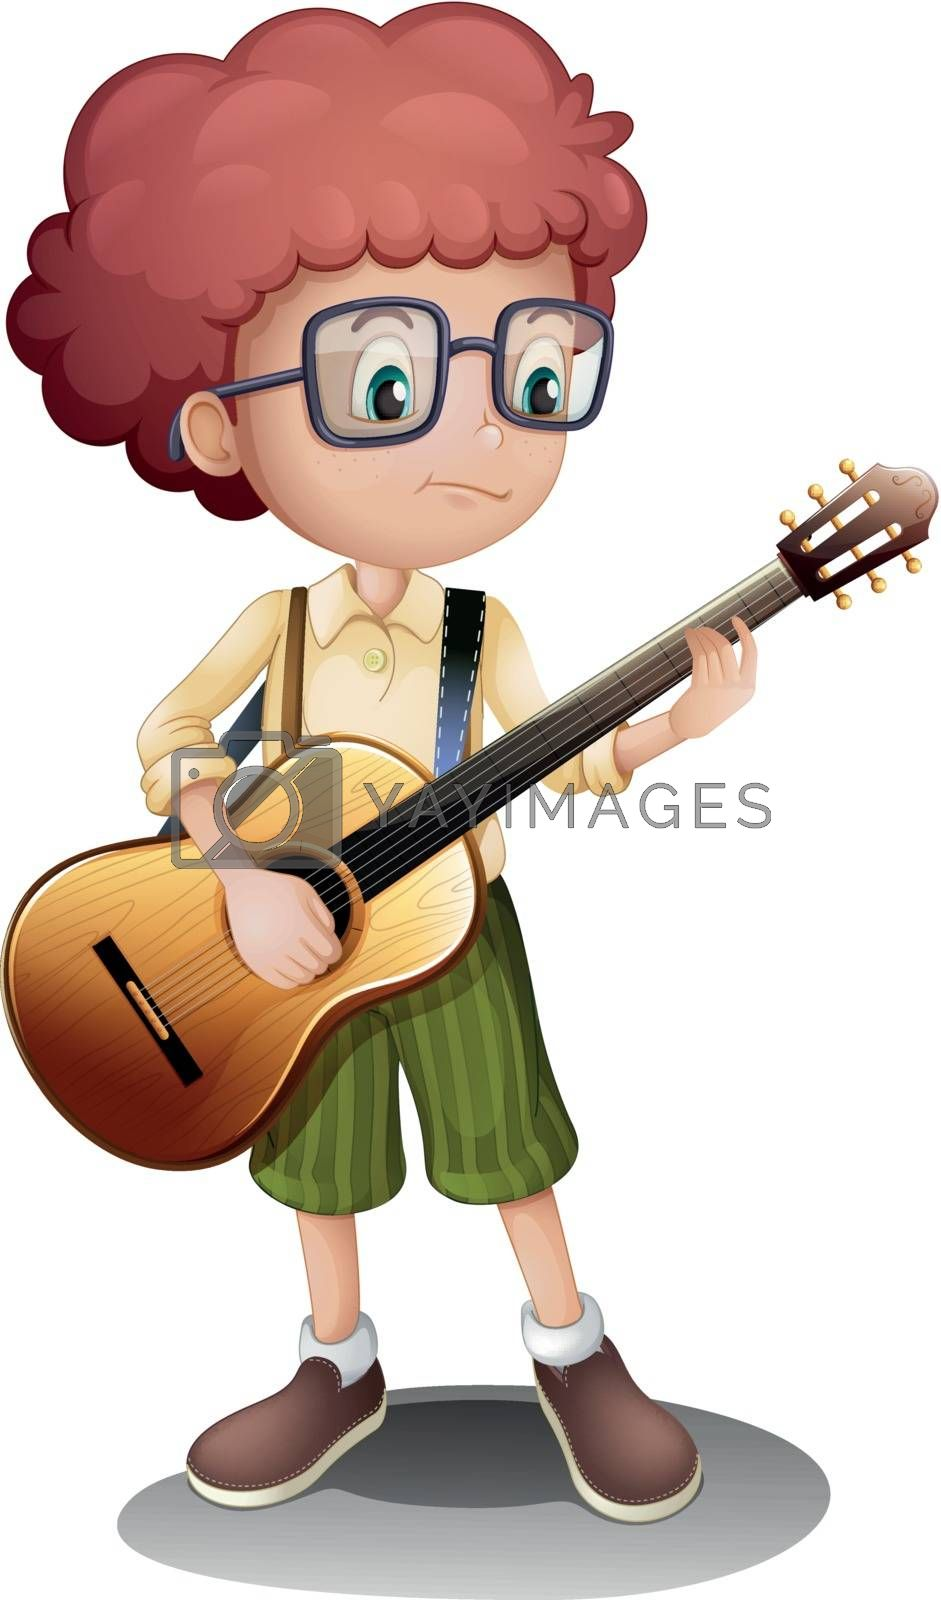 Royalty free image of A young guitarist by iimages